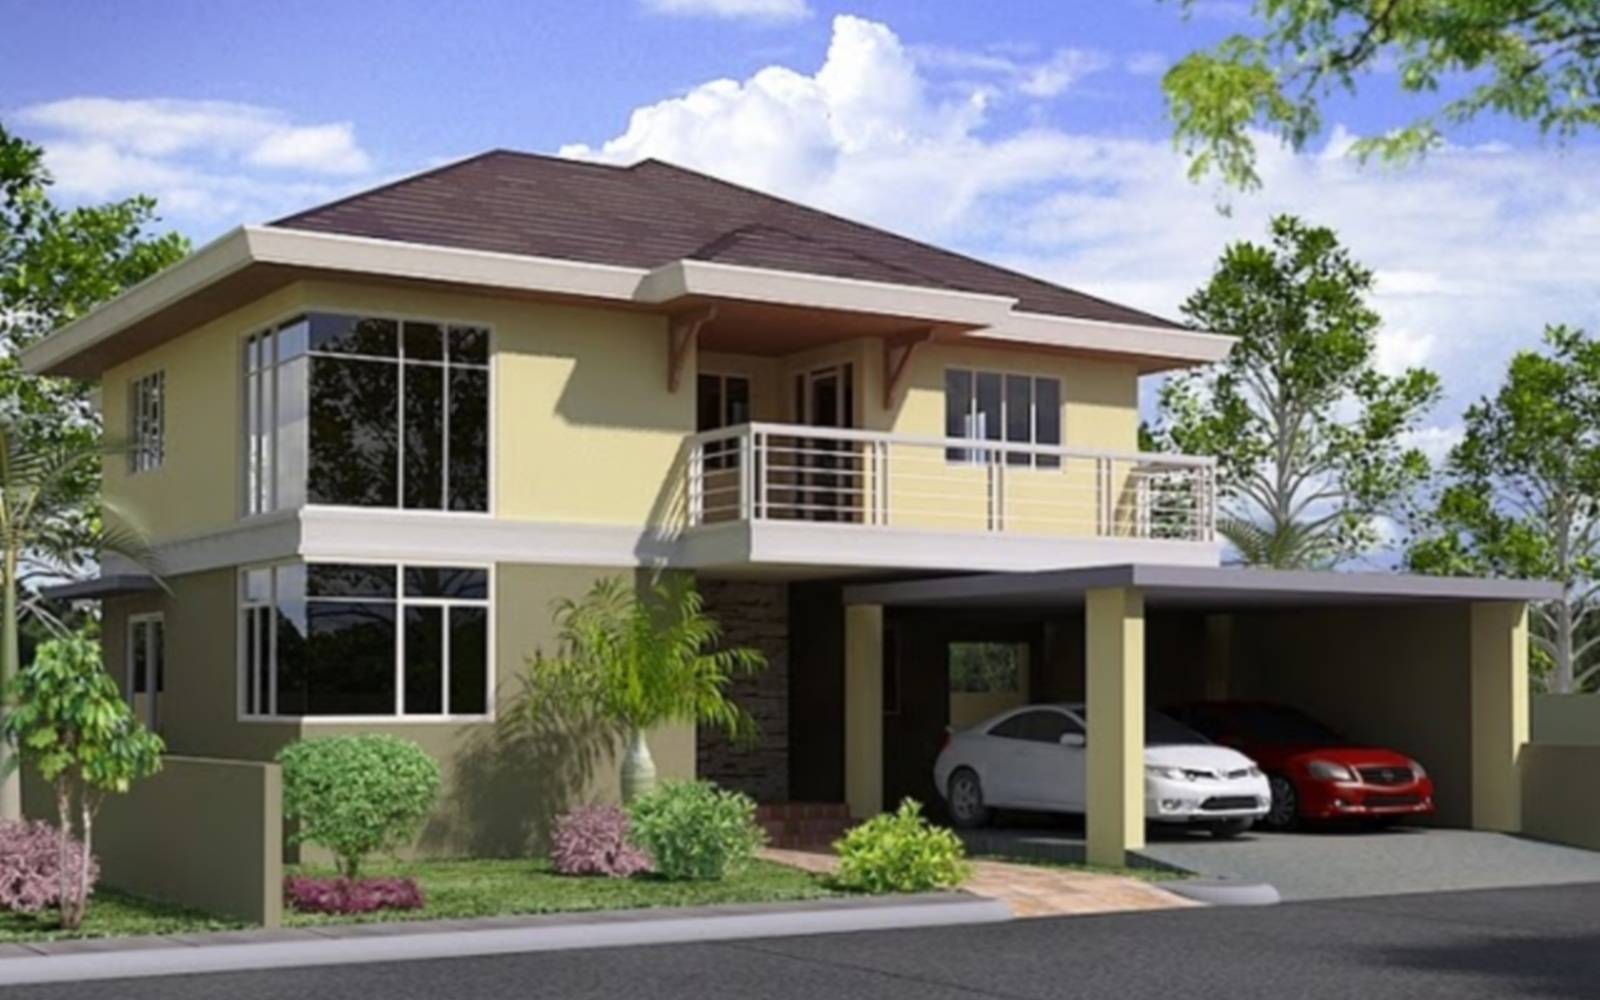 Image two storey house philippines joy studio design for 2 story house design